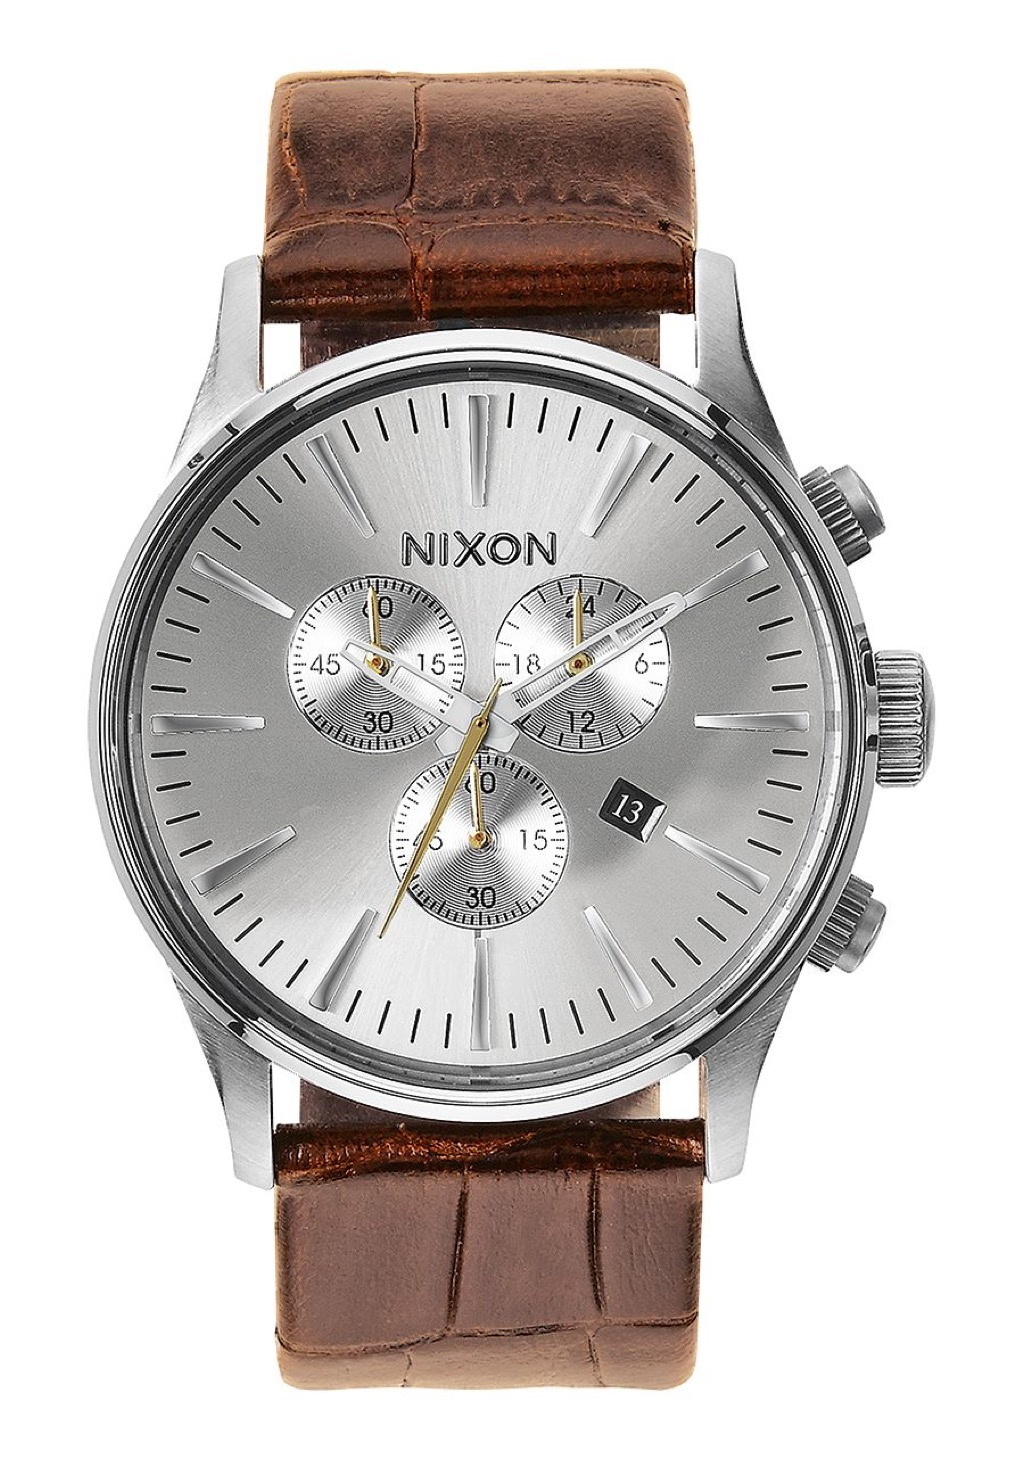 The Nixon Sentry Chrono is cool vintage watch you can buy right now